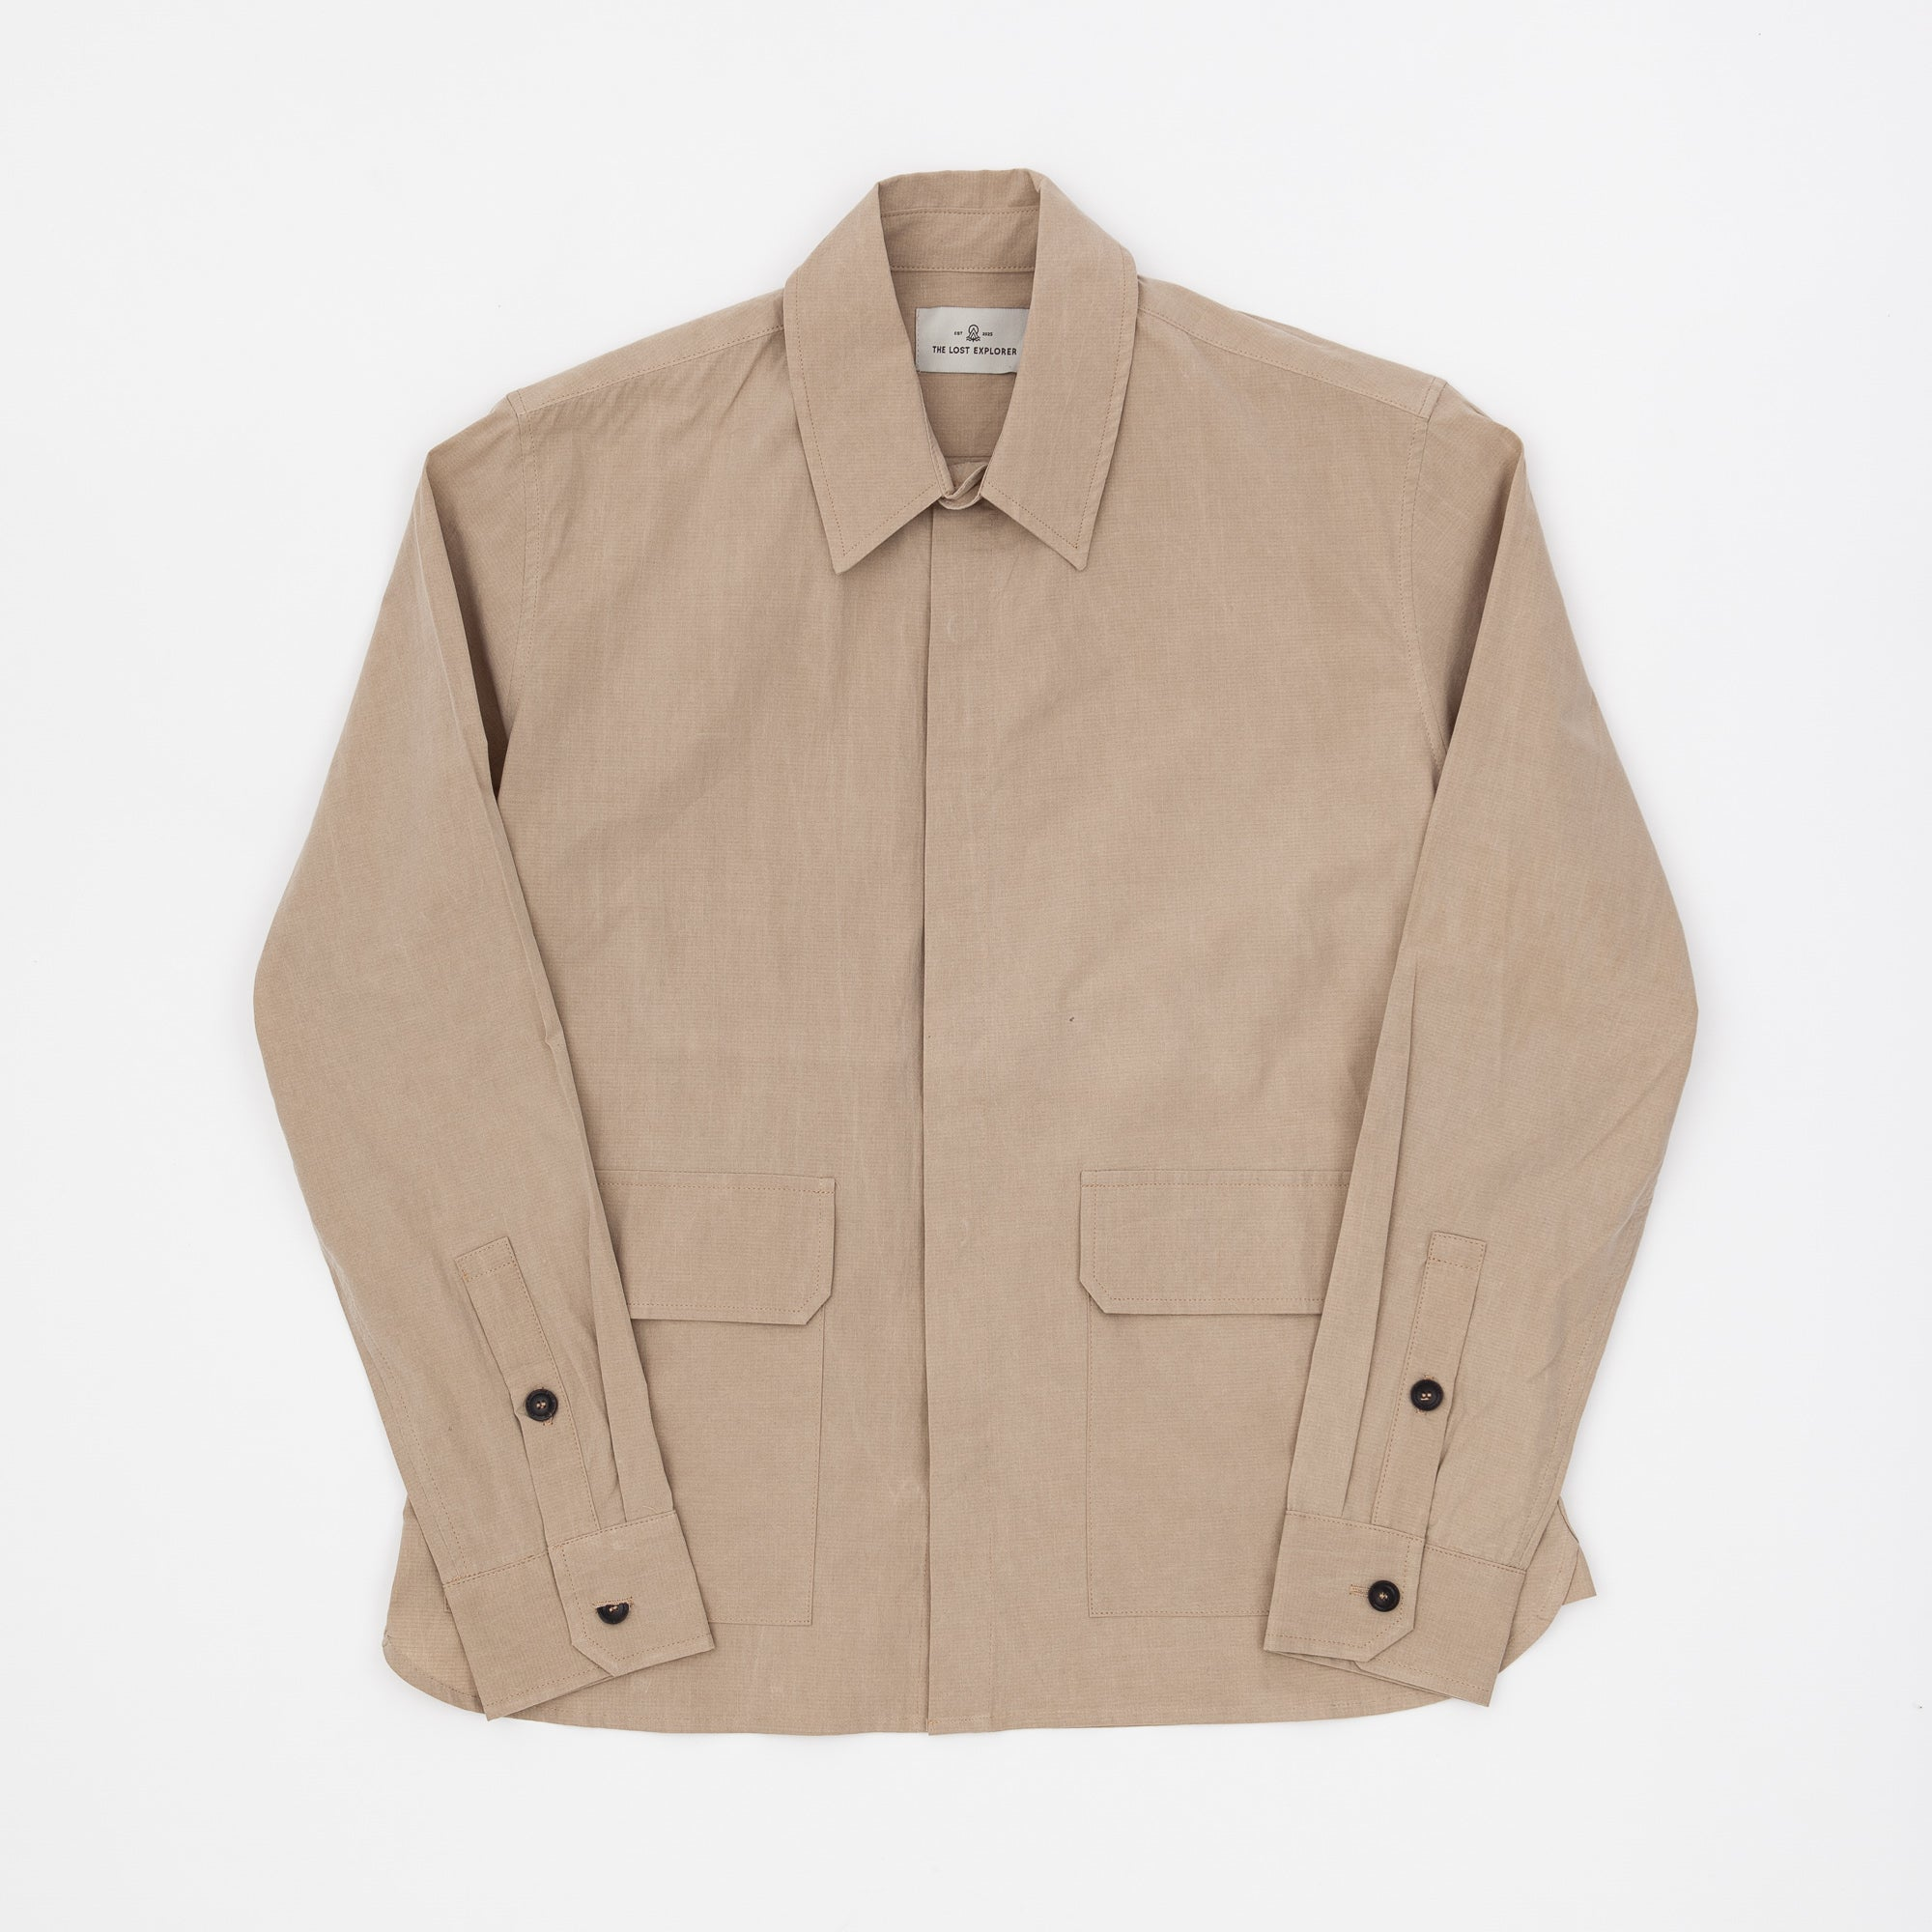 SLOTH JACKET- MICRO-RIPSTOP